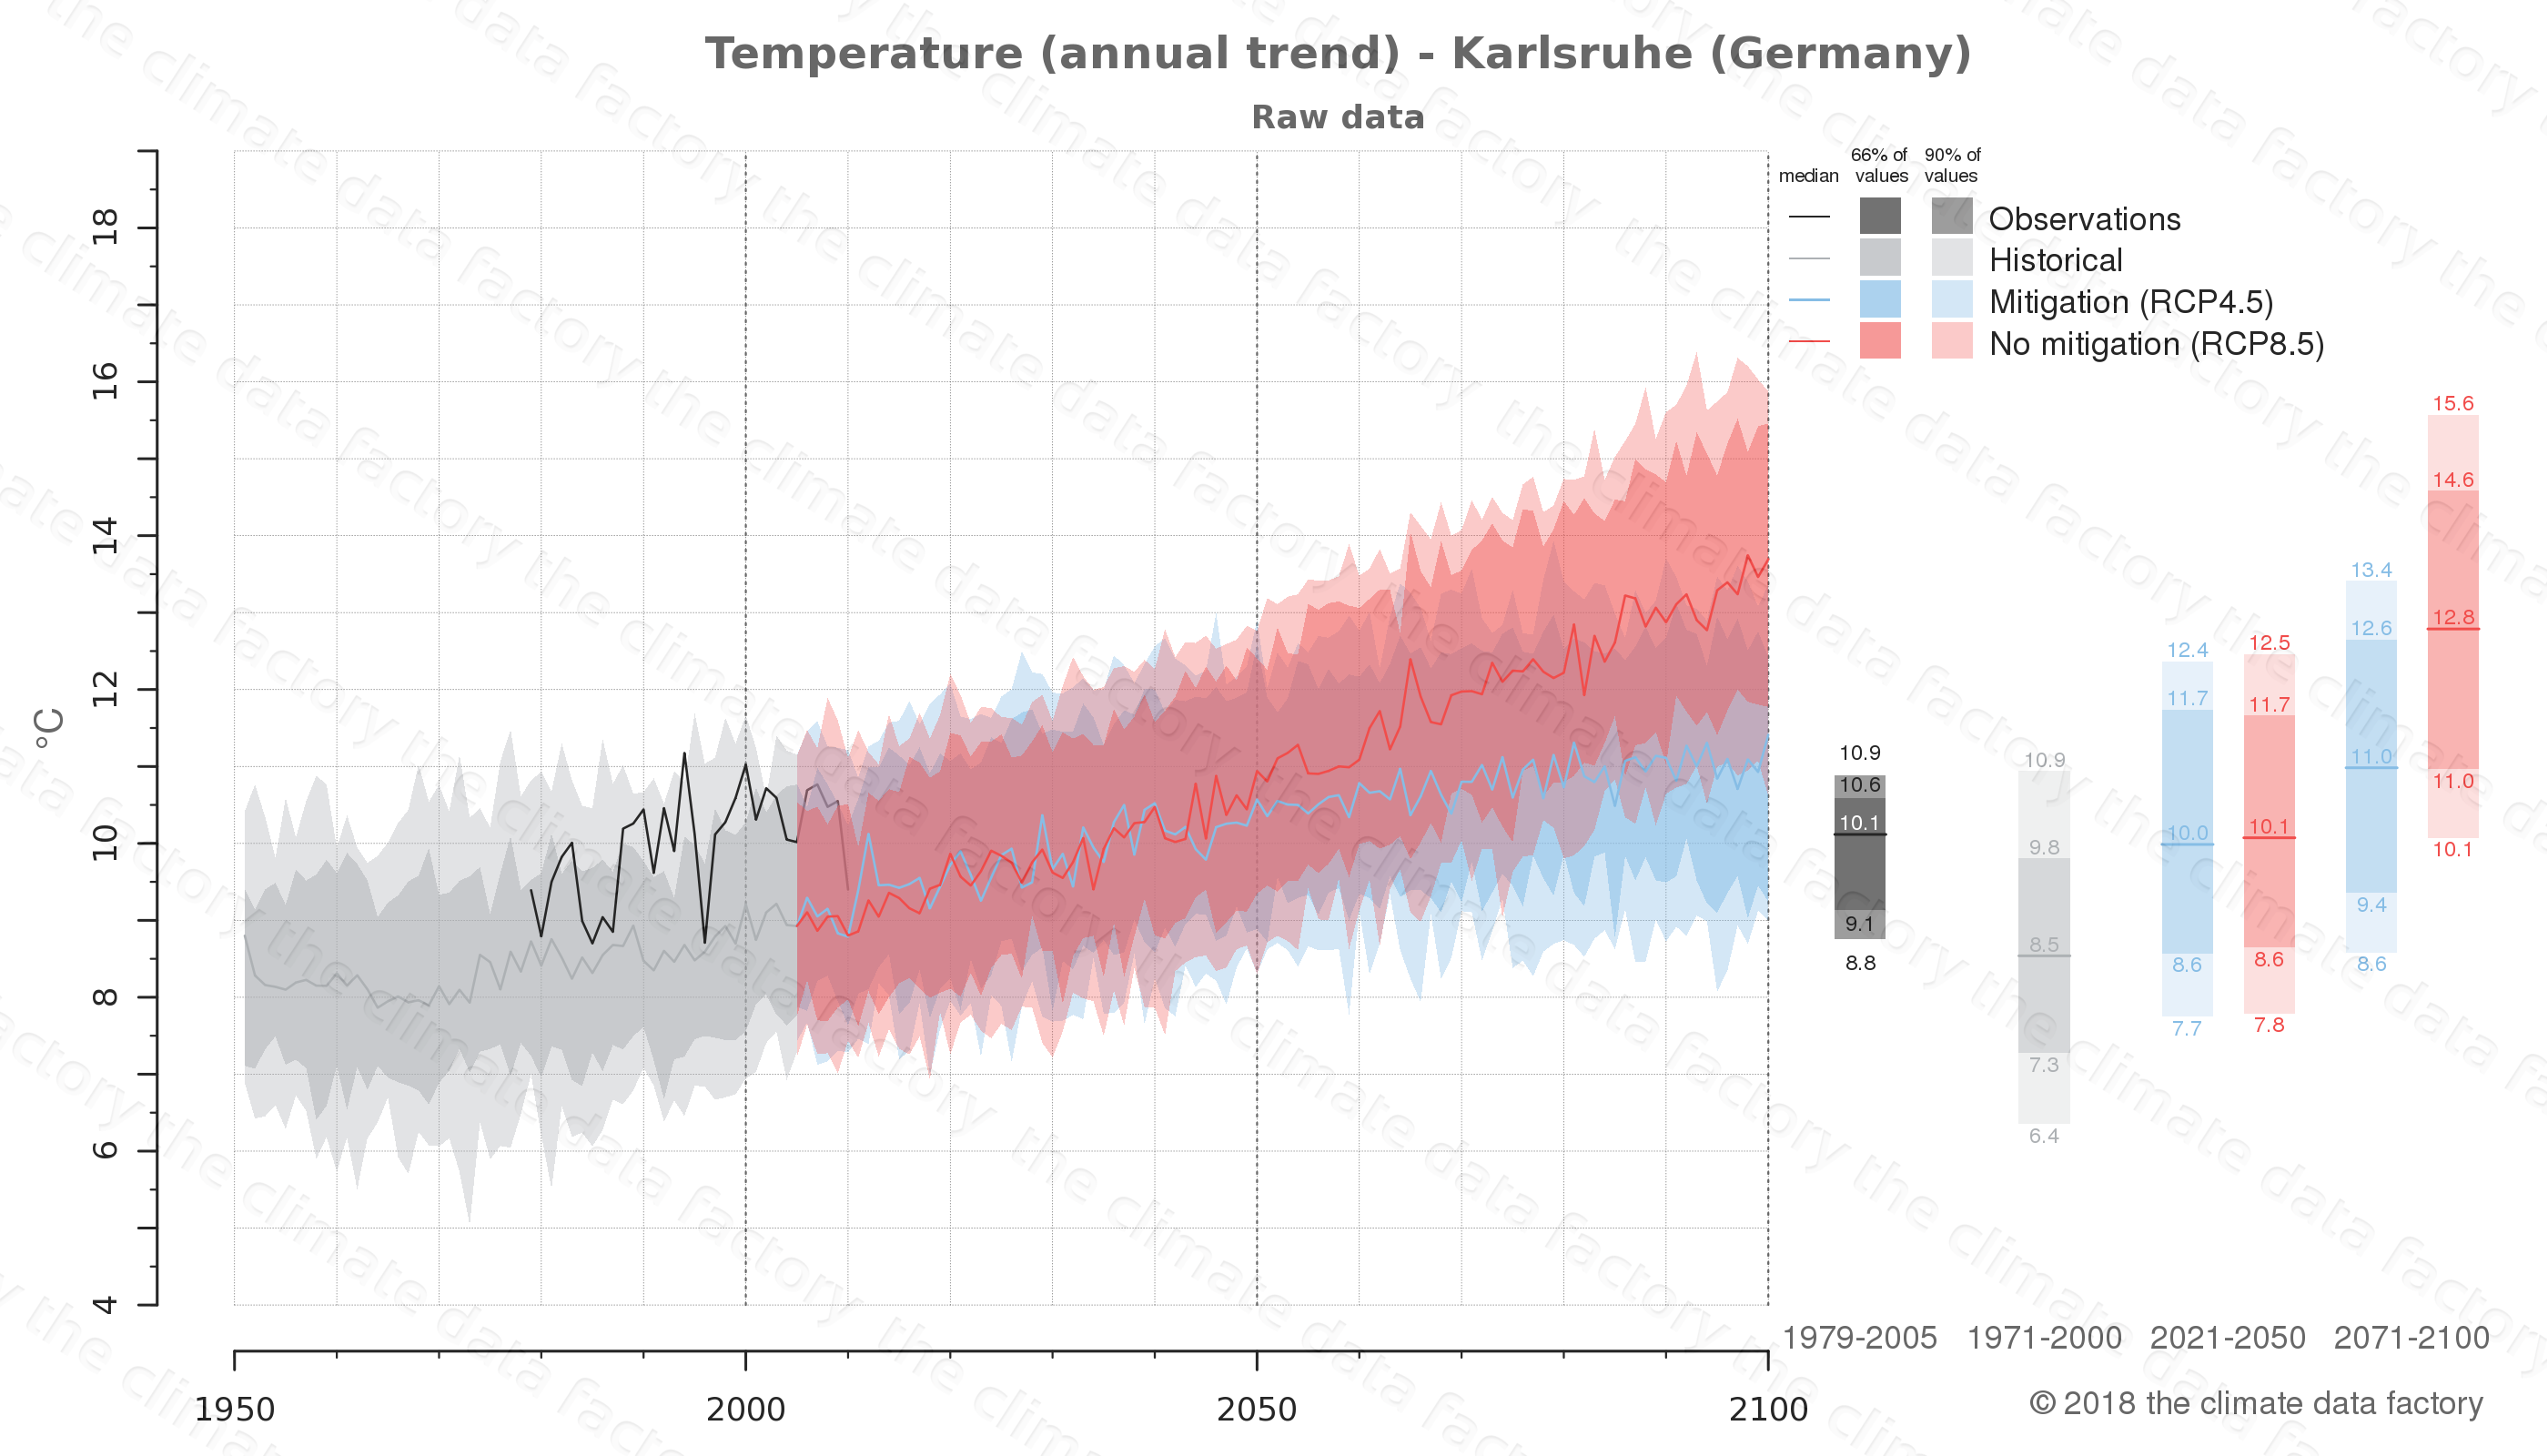 climate change data policy adaptation climate graph city data temperature karlsruhe germany